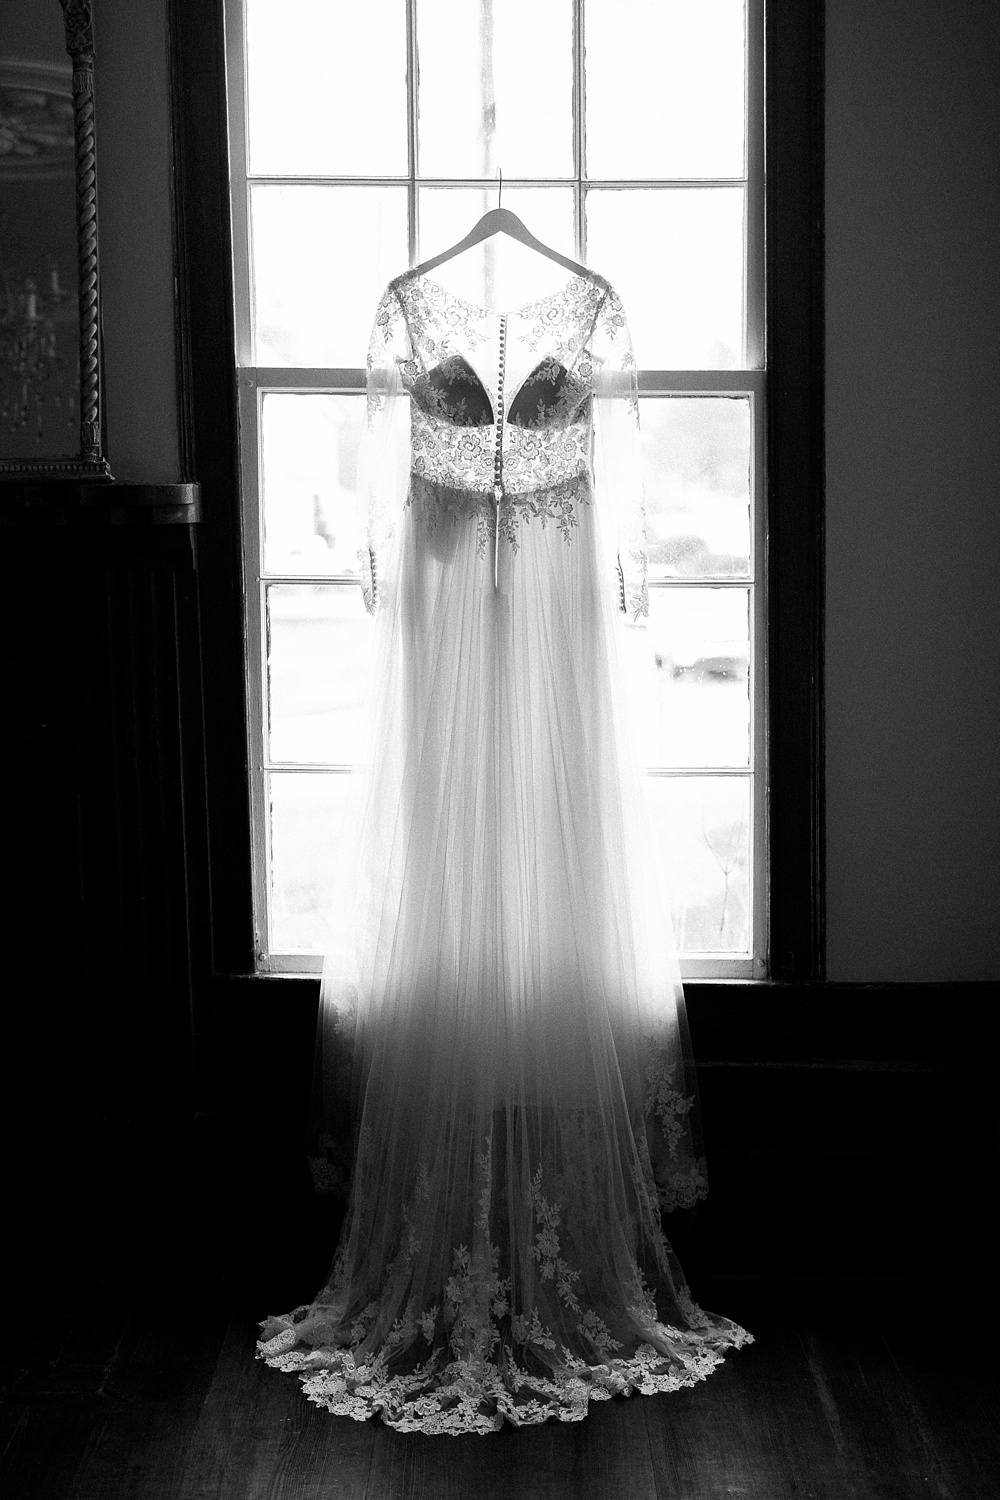 bride's essense of australia gown hangs in a window frame inside the mim's house